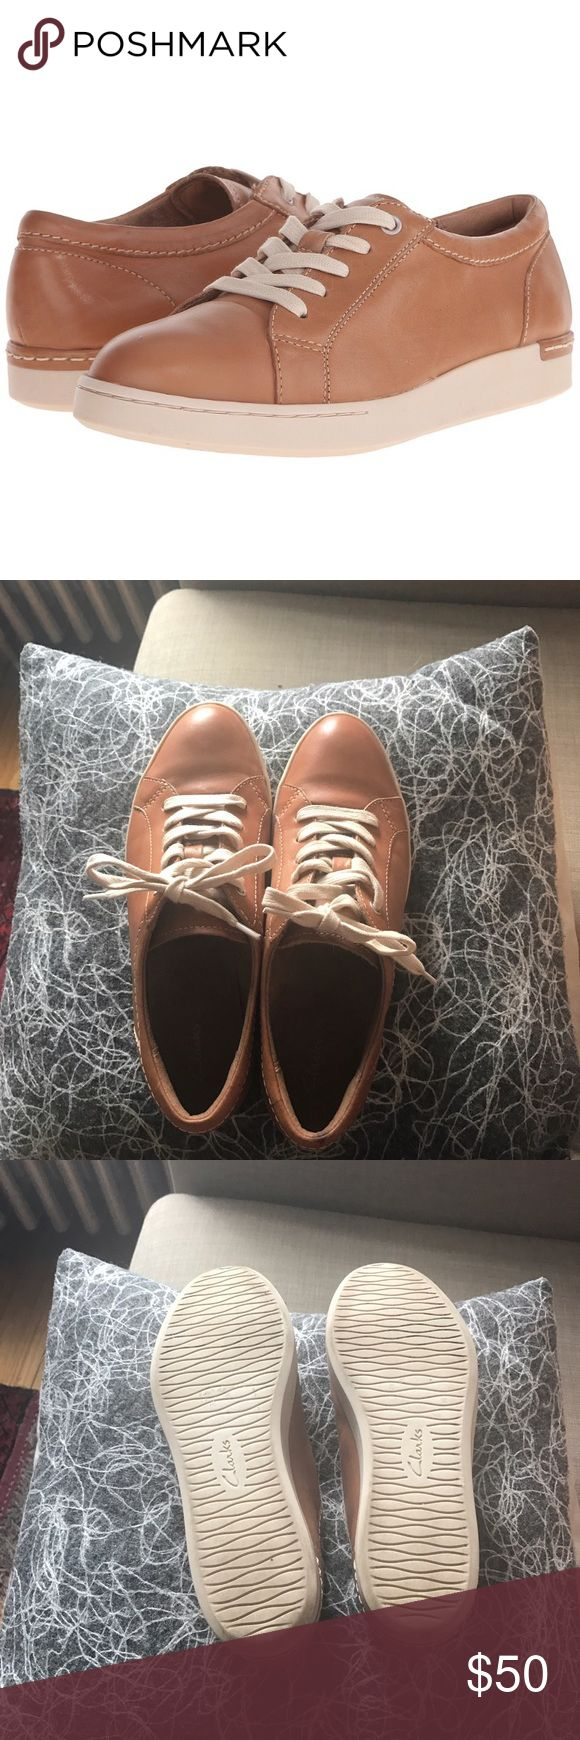 Clarks artisan 100% leather sneakers Super comfy, classic cognac brown leather sneakers. These don't get as much attention as they should in my collection, so they need to go to a new home! Like new. Clarks Shoes Sneakers